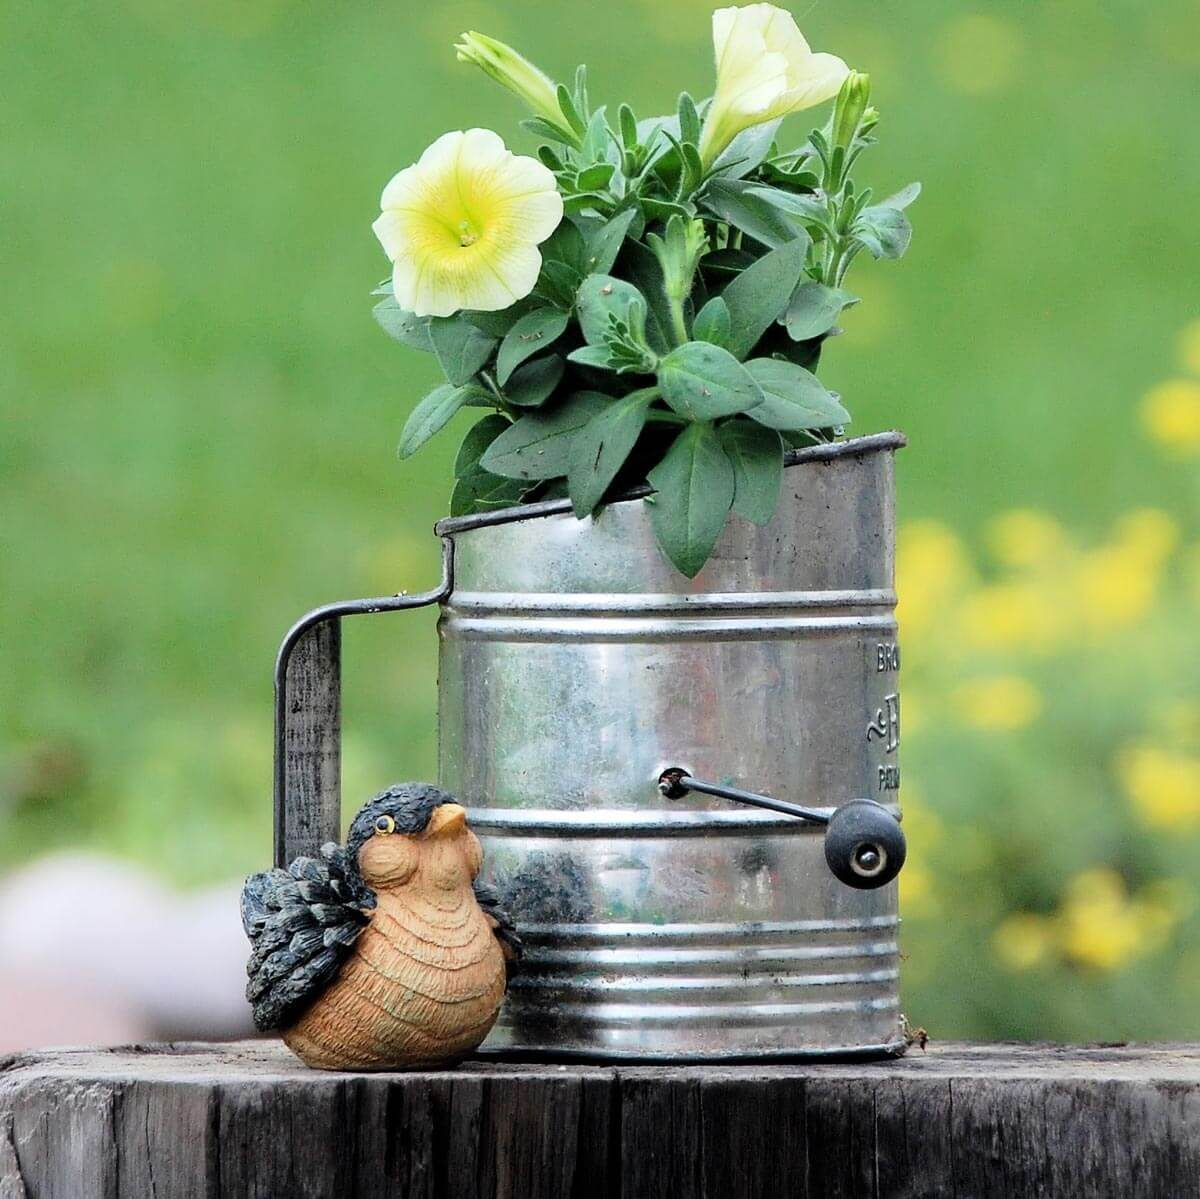 Flour Sifter Flower Pot